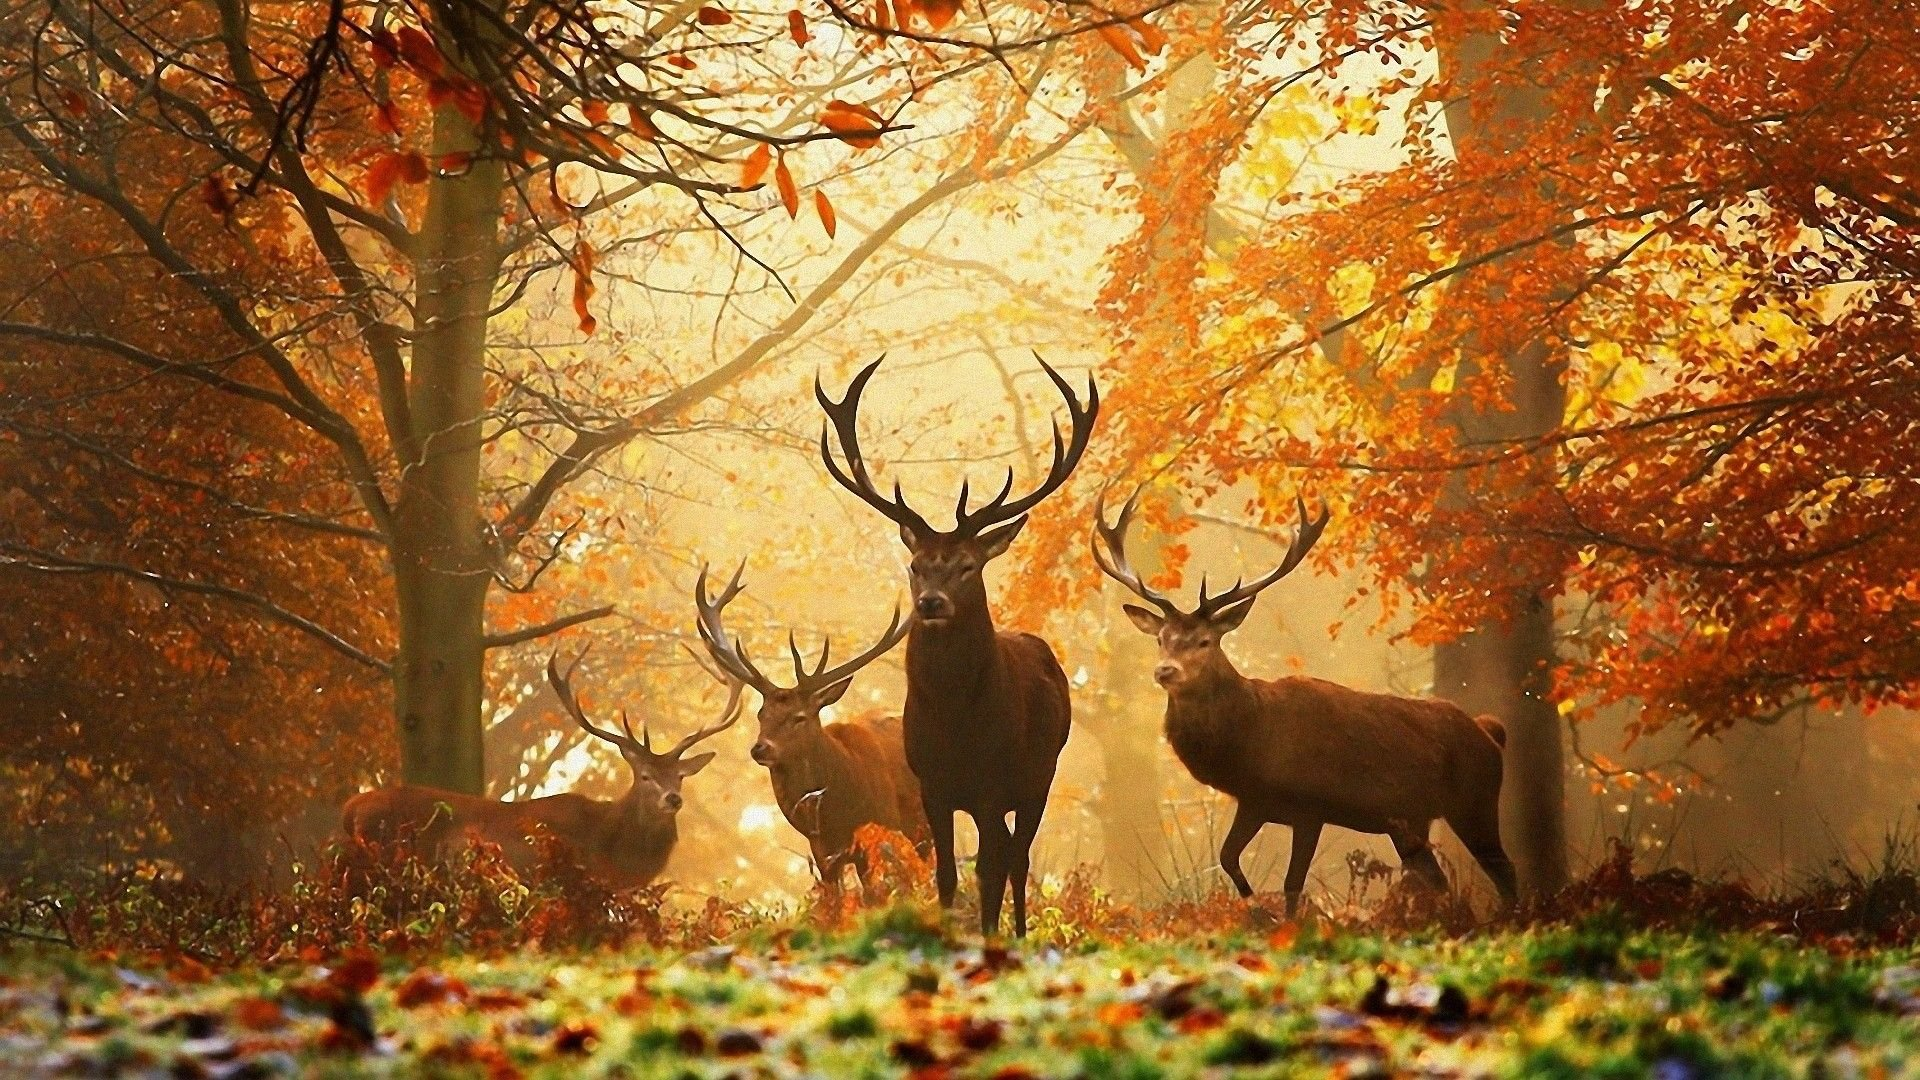 50 Best Autumn Desktop Wallpapers   Download at WallpaperBro 1920x1080